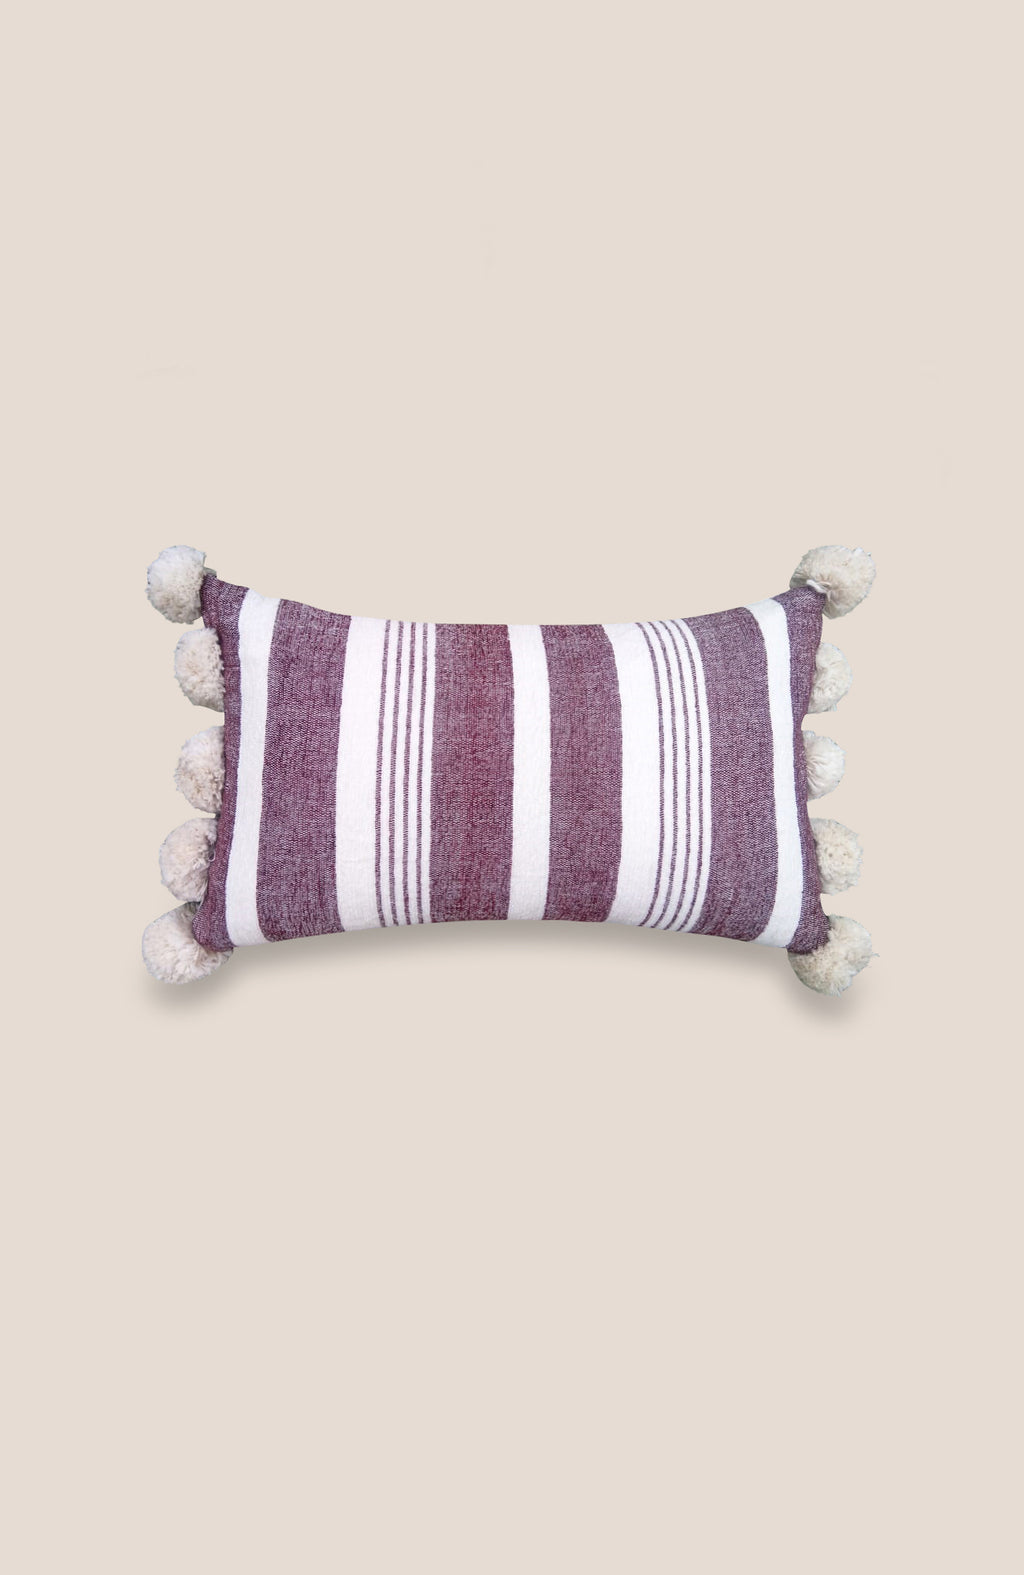 Pompon Pillow Cover Ray - Home Decor | Shop Baskets, Ceramics, Pillows, Rugs & Wall Hangs online